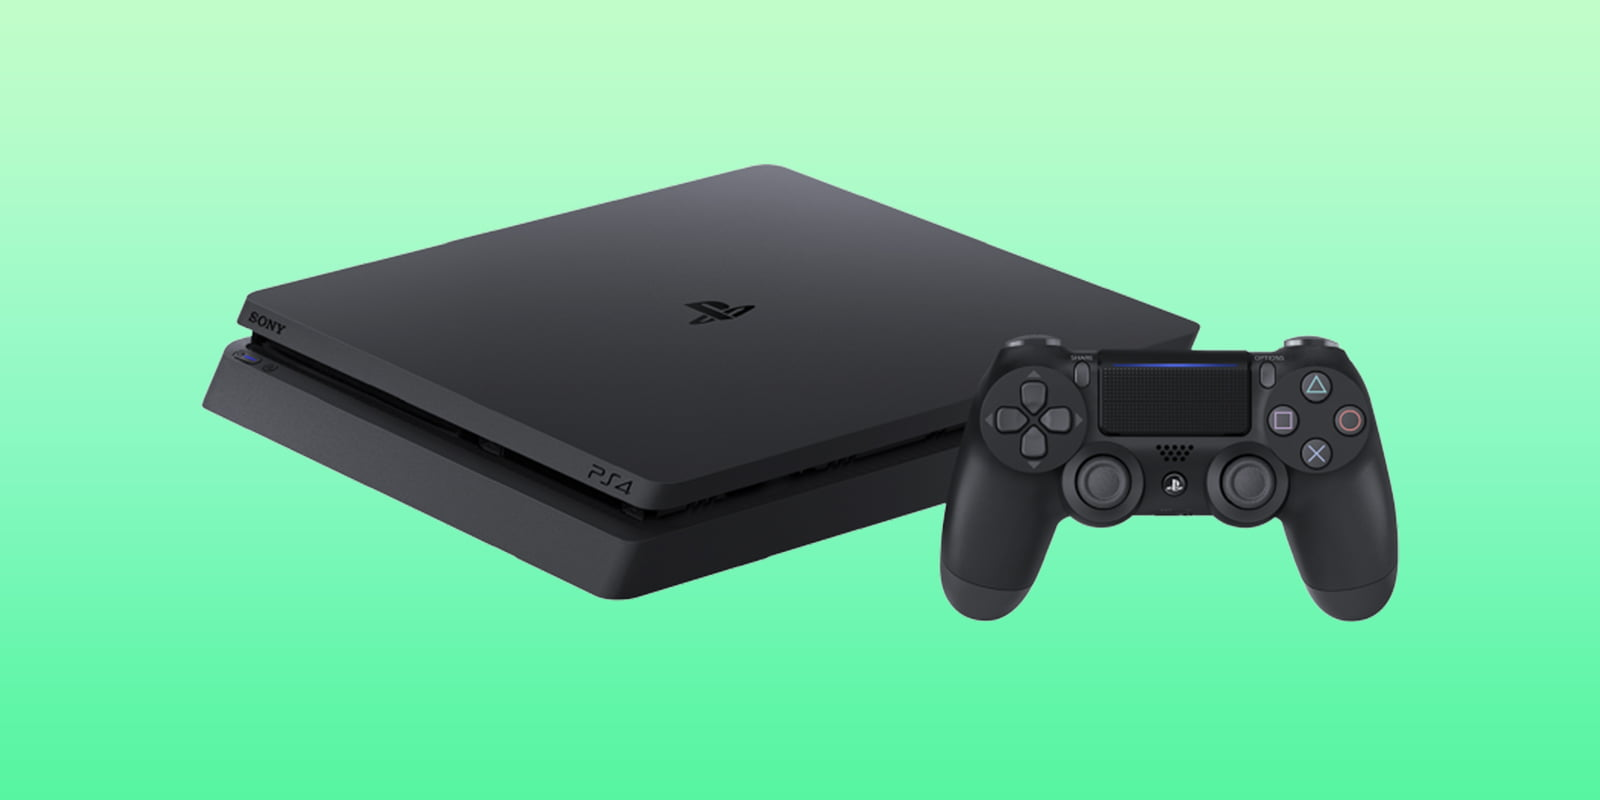 featured image containing PS4 with controller